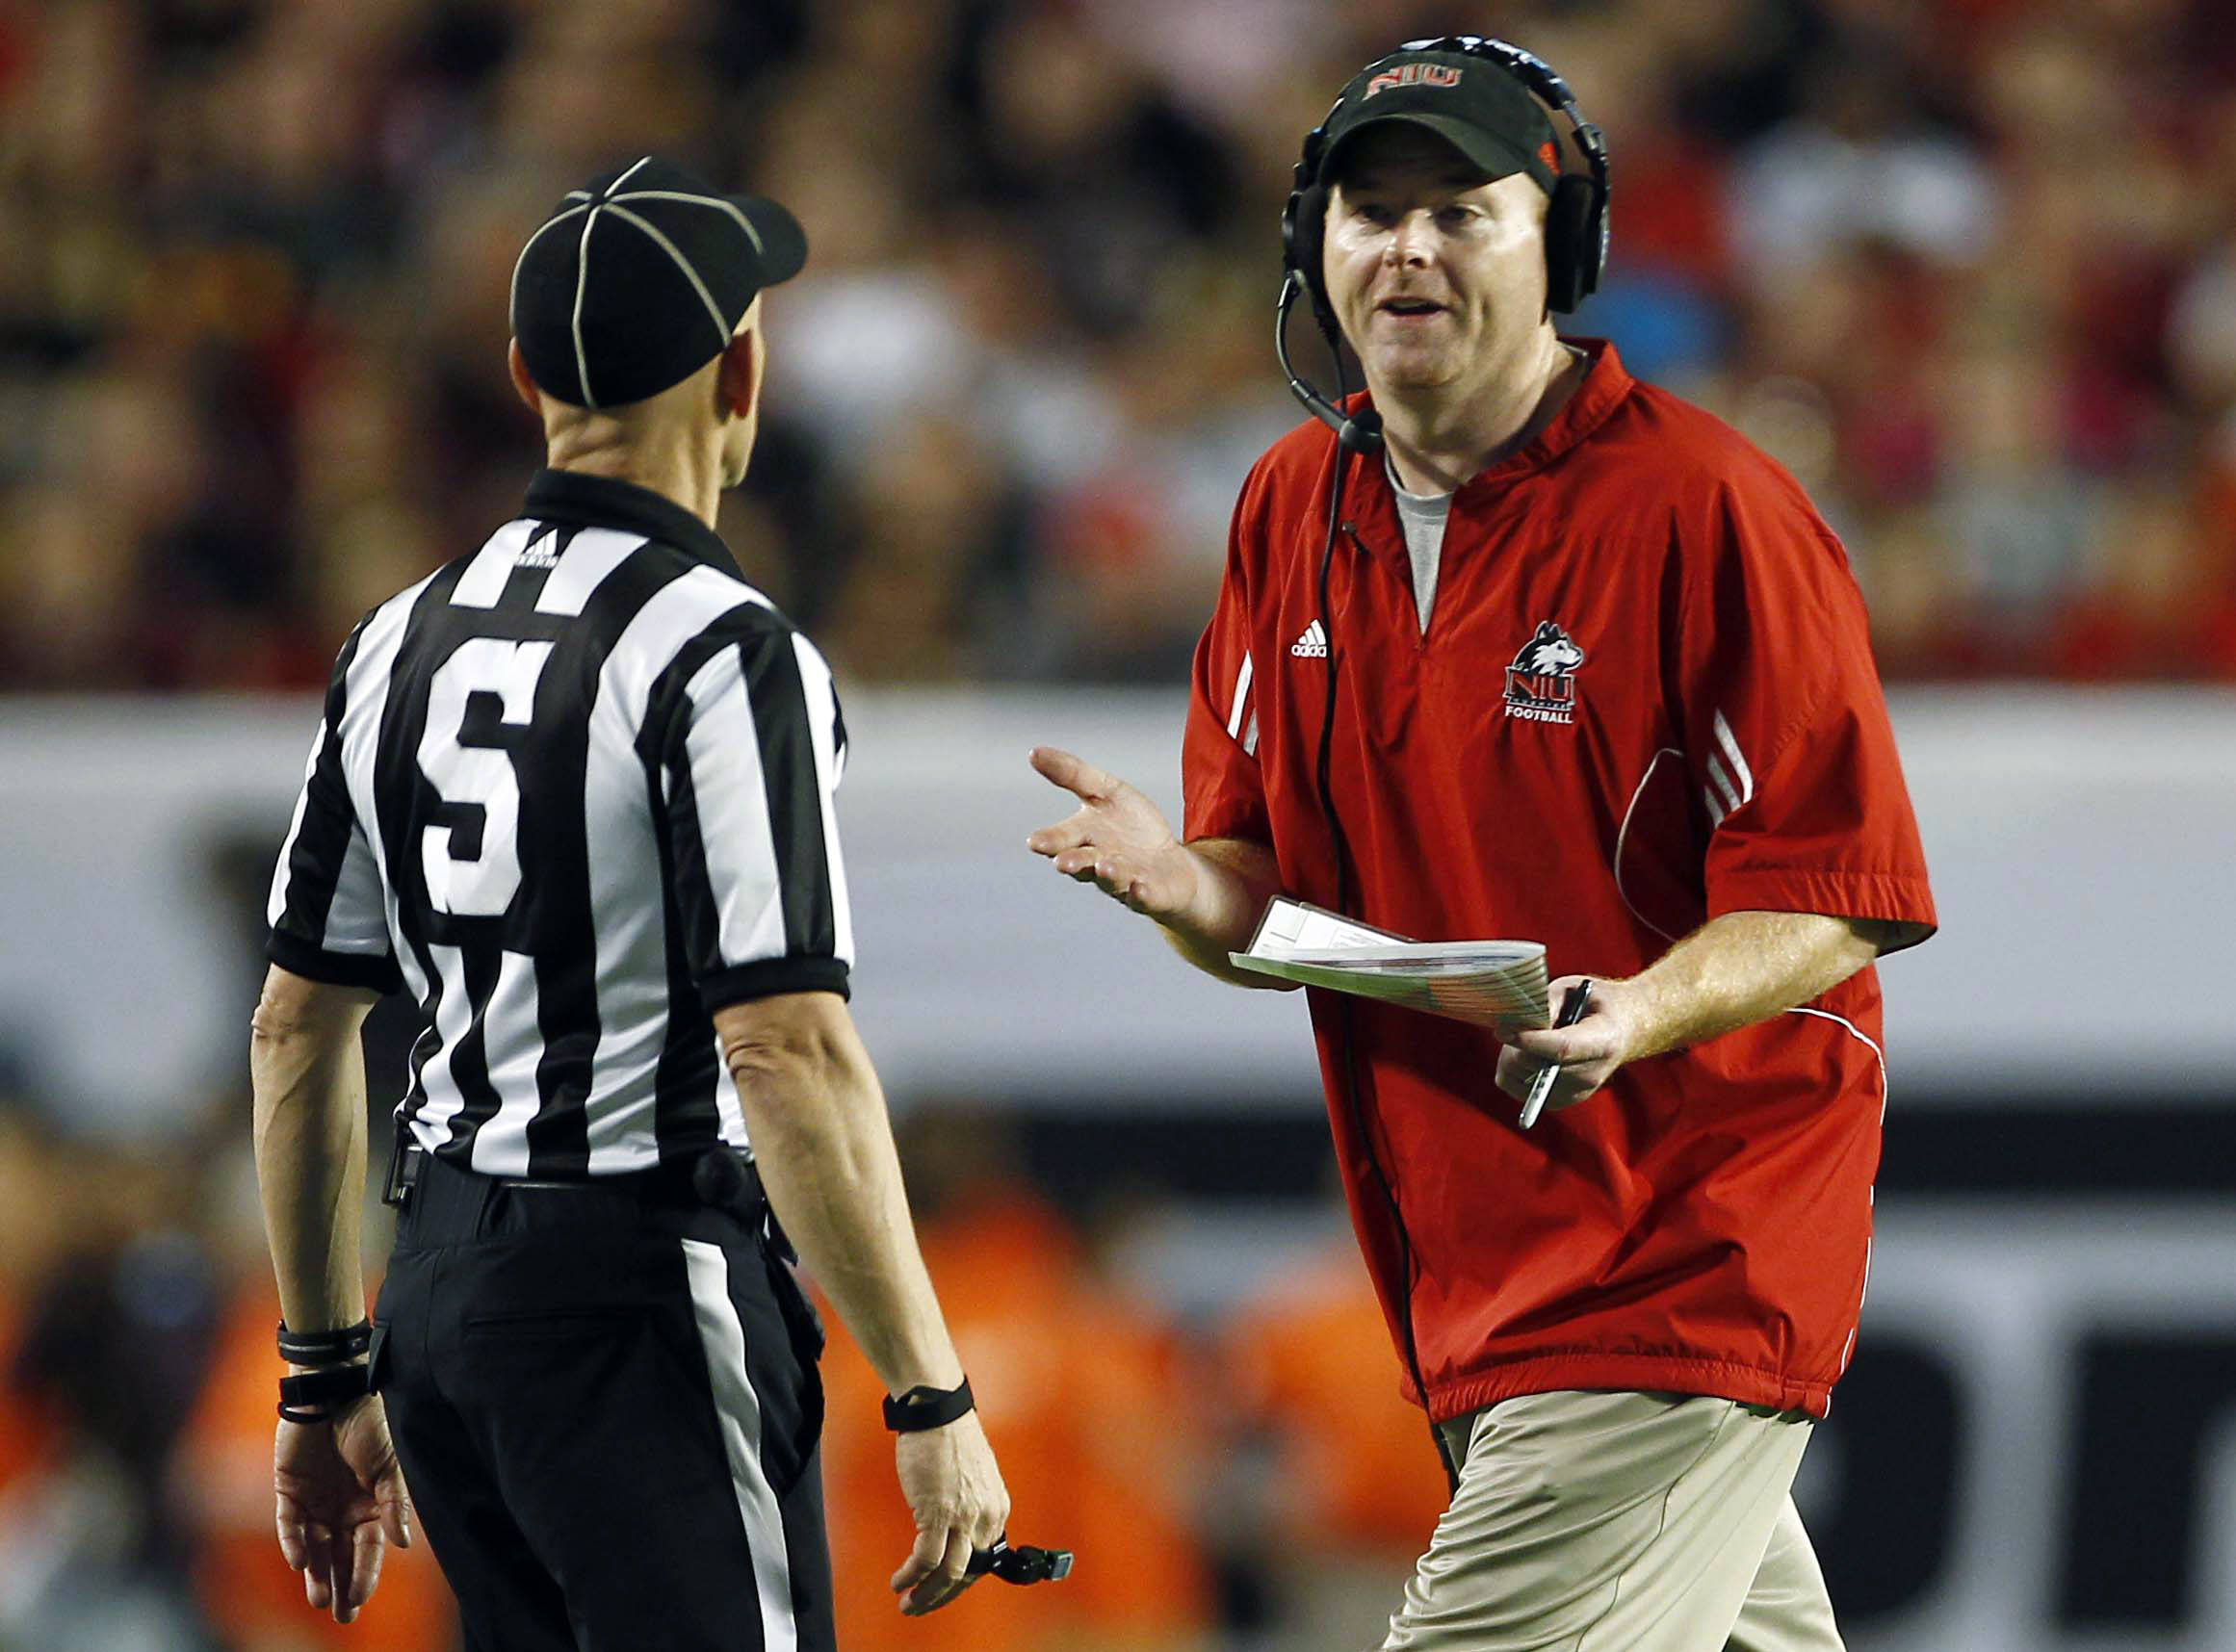 Northern Illinois head coach Rod Carey, right, argues a call with a referee during the first half of the Orange Bowl NCAA college football game against Florida State, Tuesday, Jan. 1, 2013, in Miami. (AP Photo/J Pat Carter)